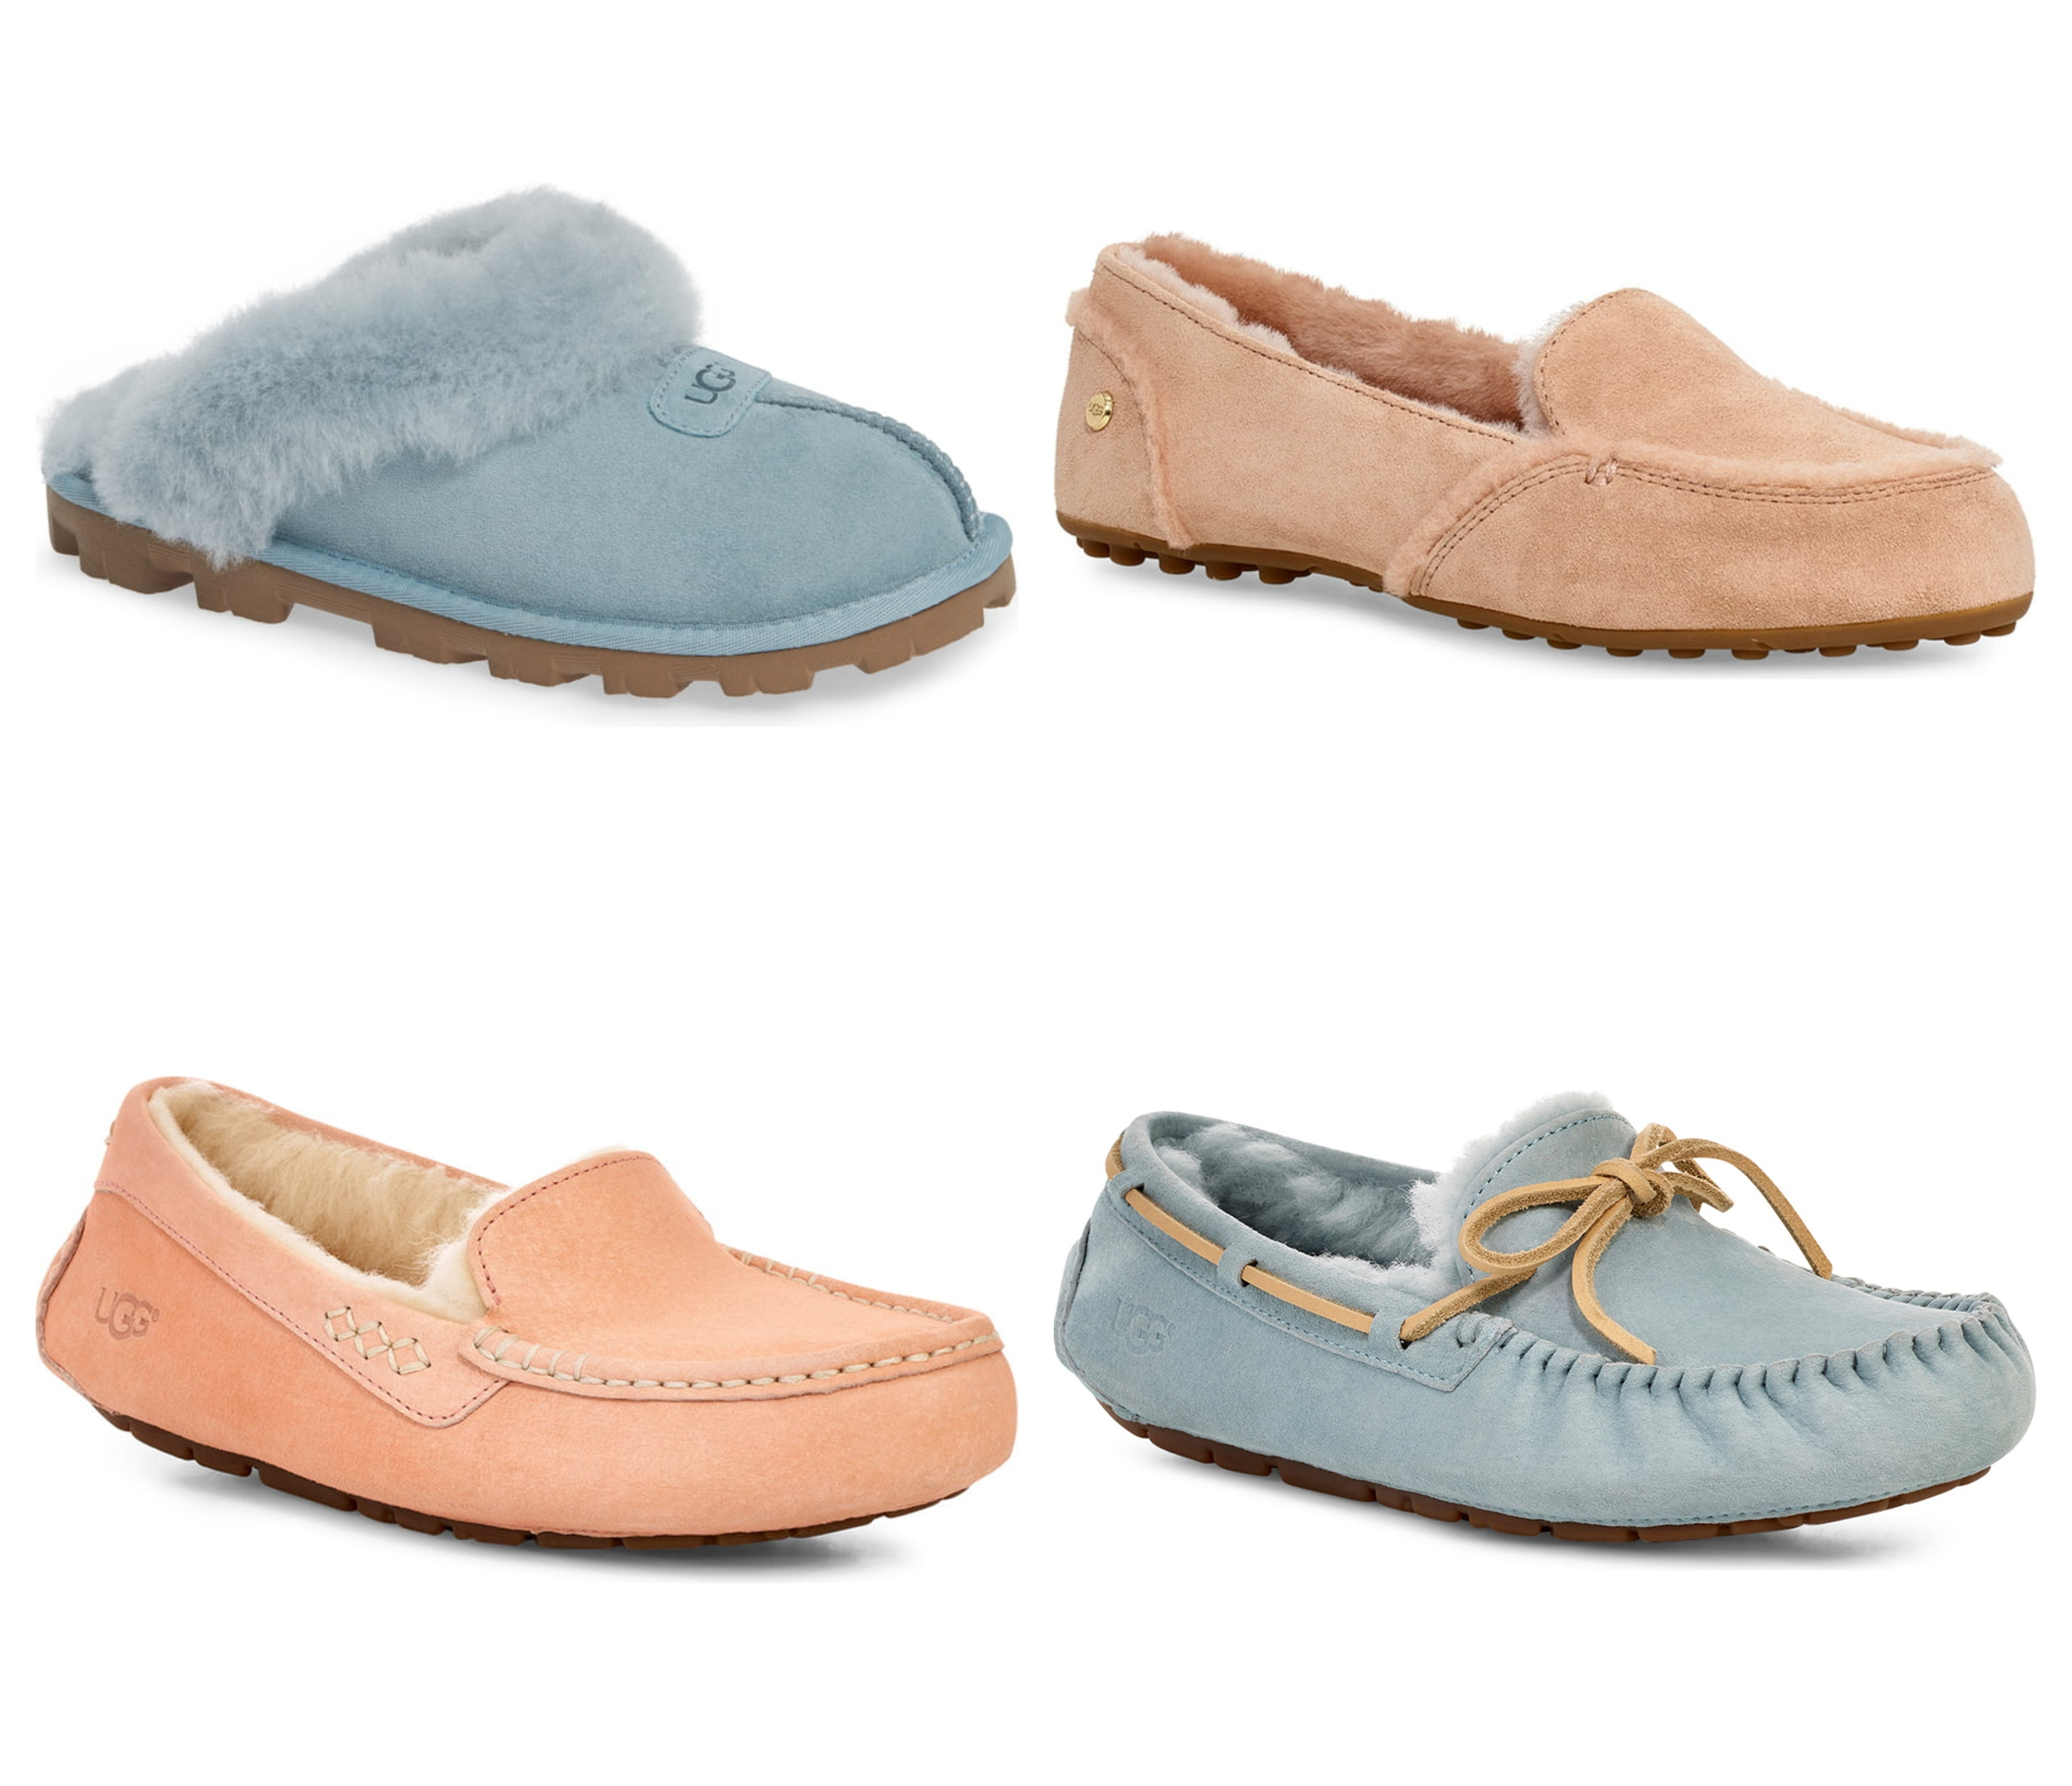 a88e02b63029 Nordstrom: 40% Off UGG Slippers + Free Shipping & Returns! – Wear It ...